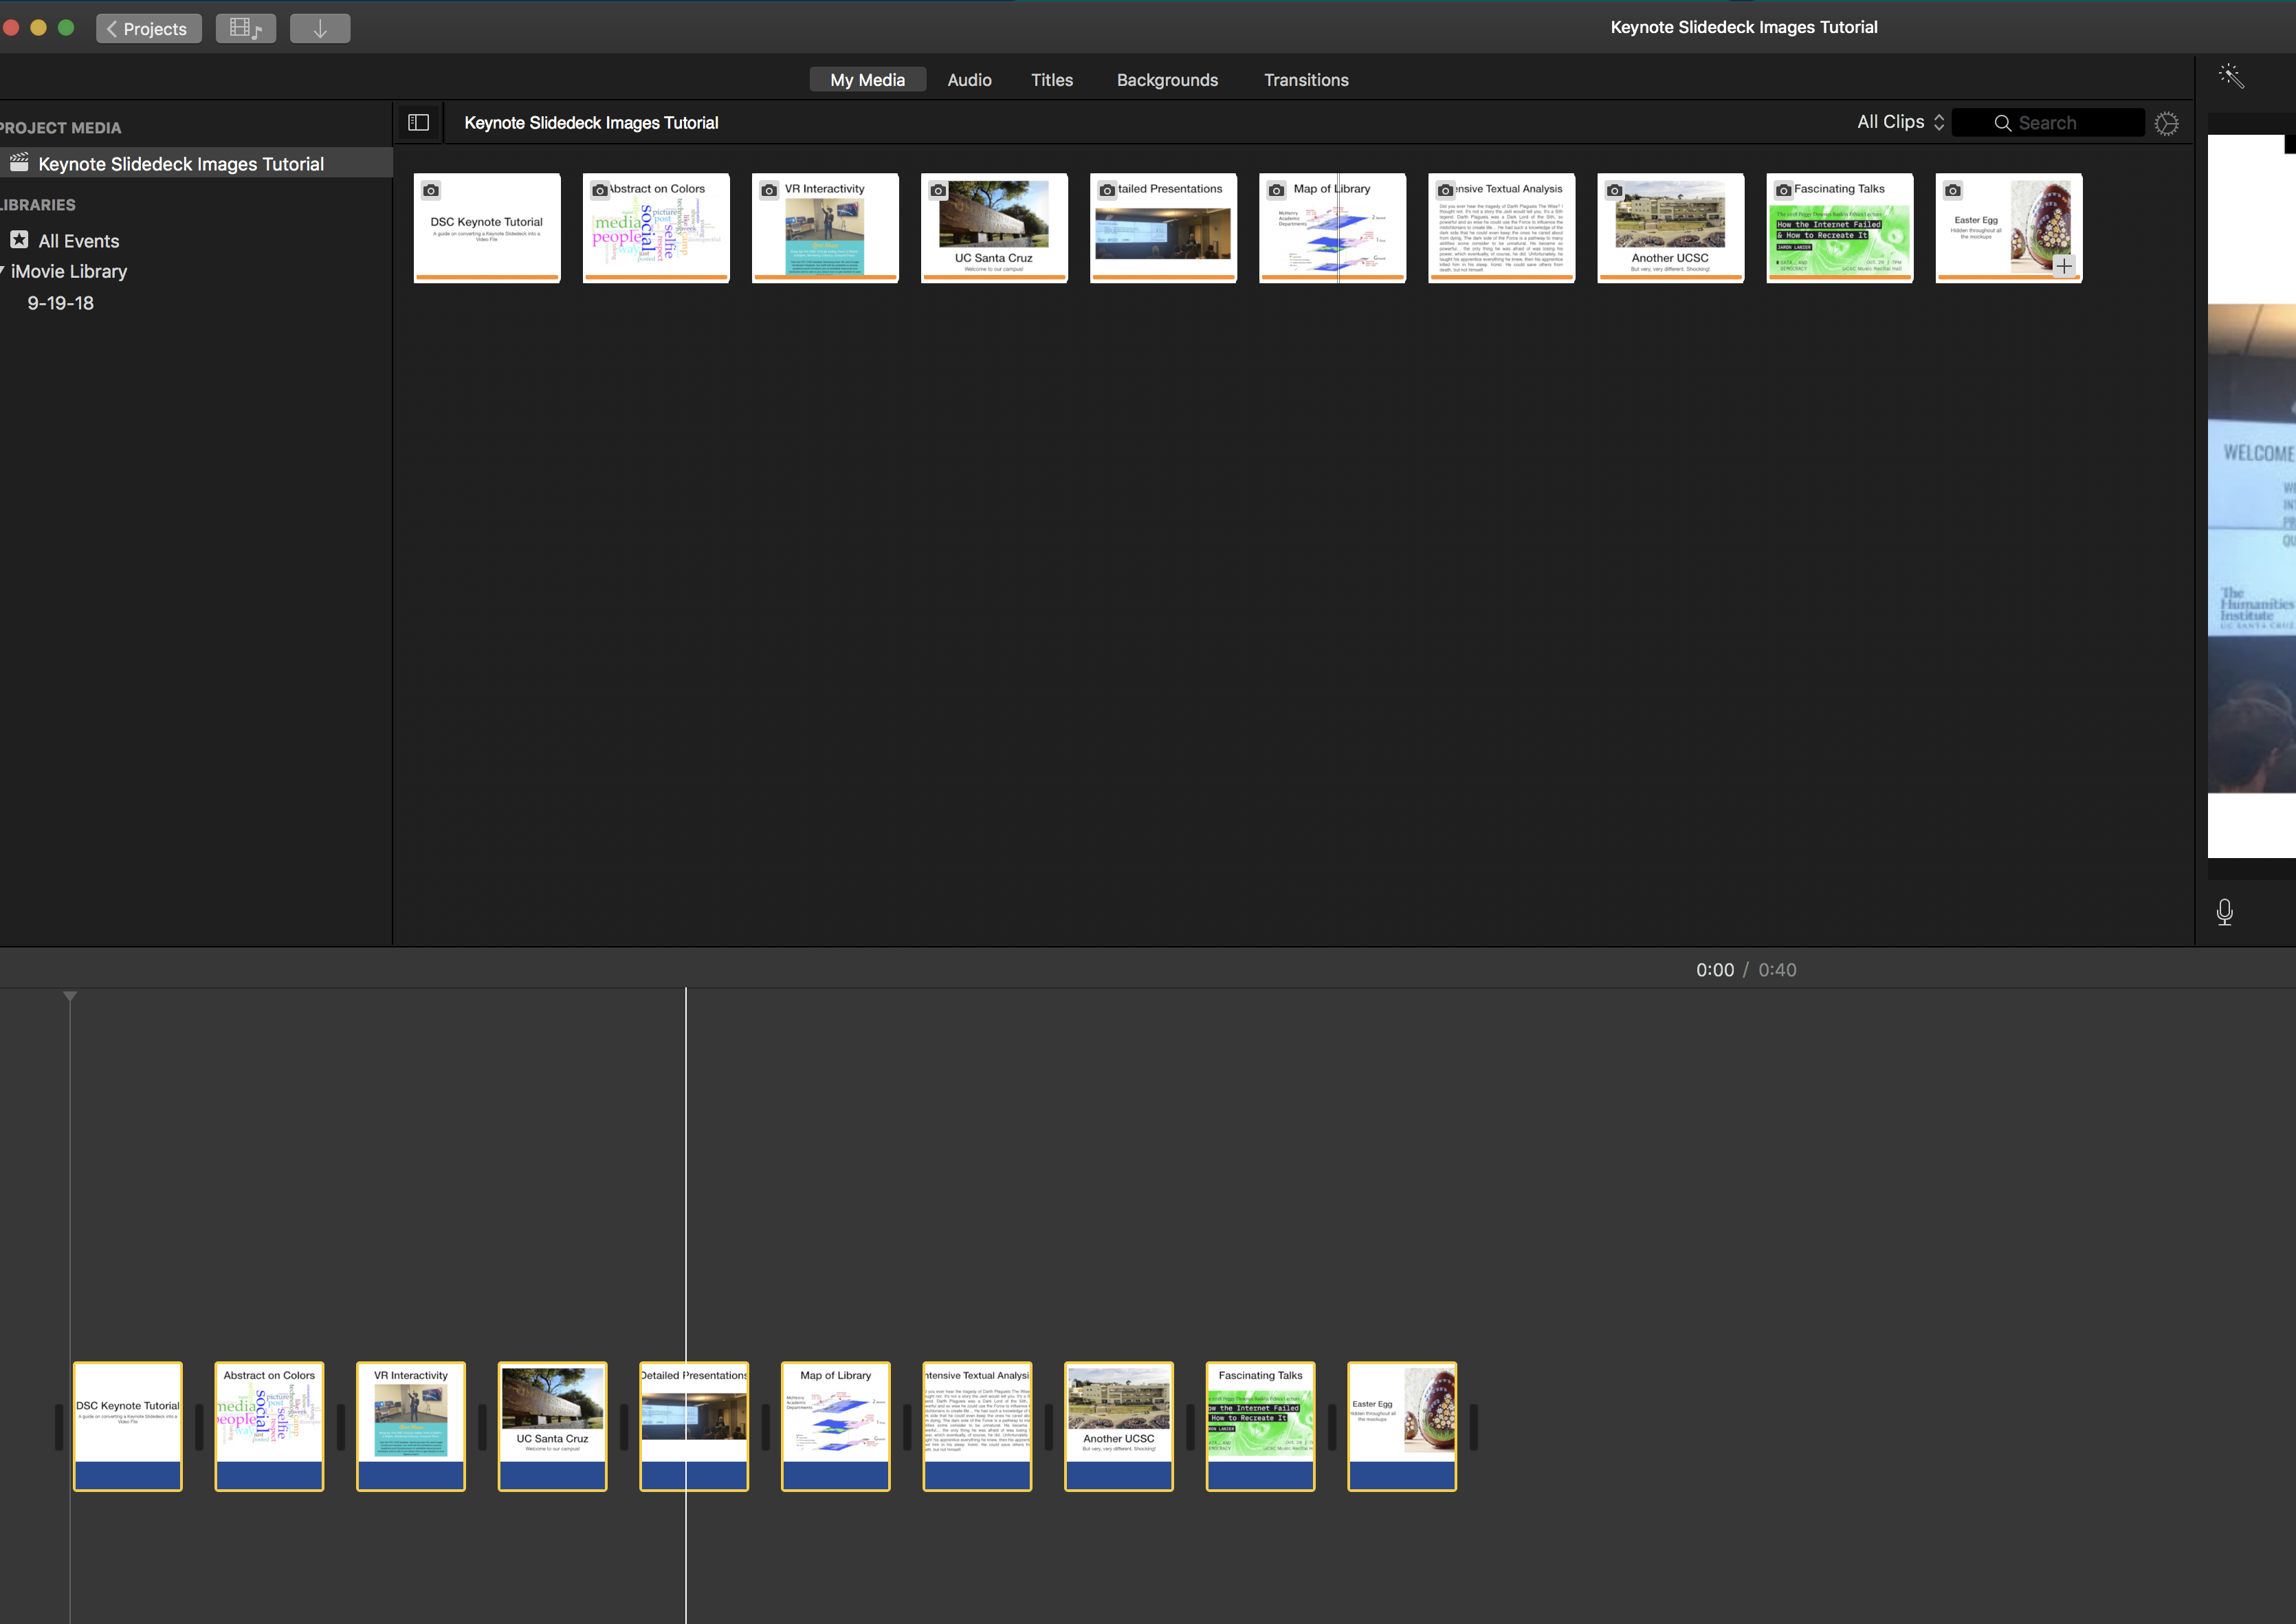 iMovie adding images to timeline